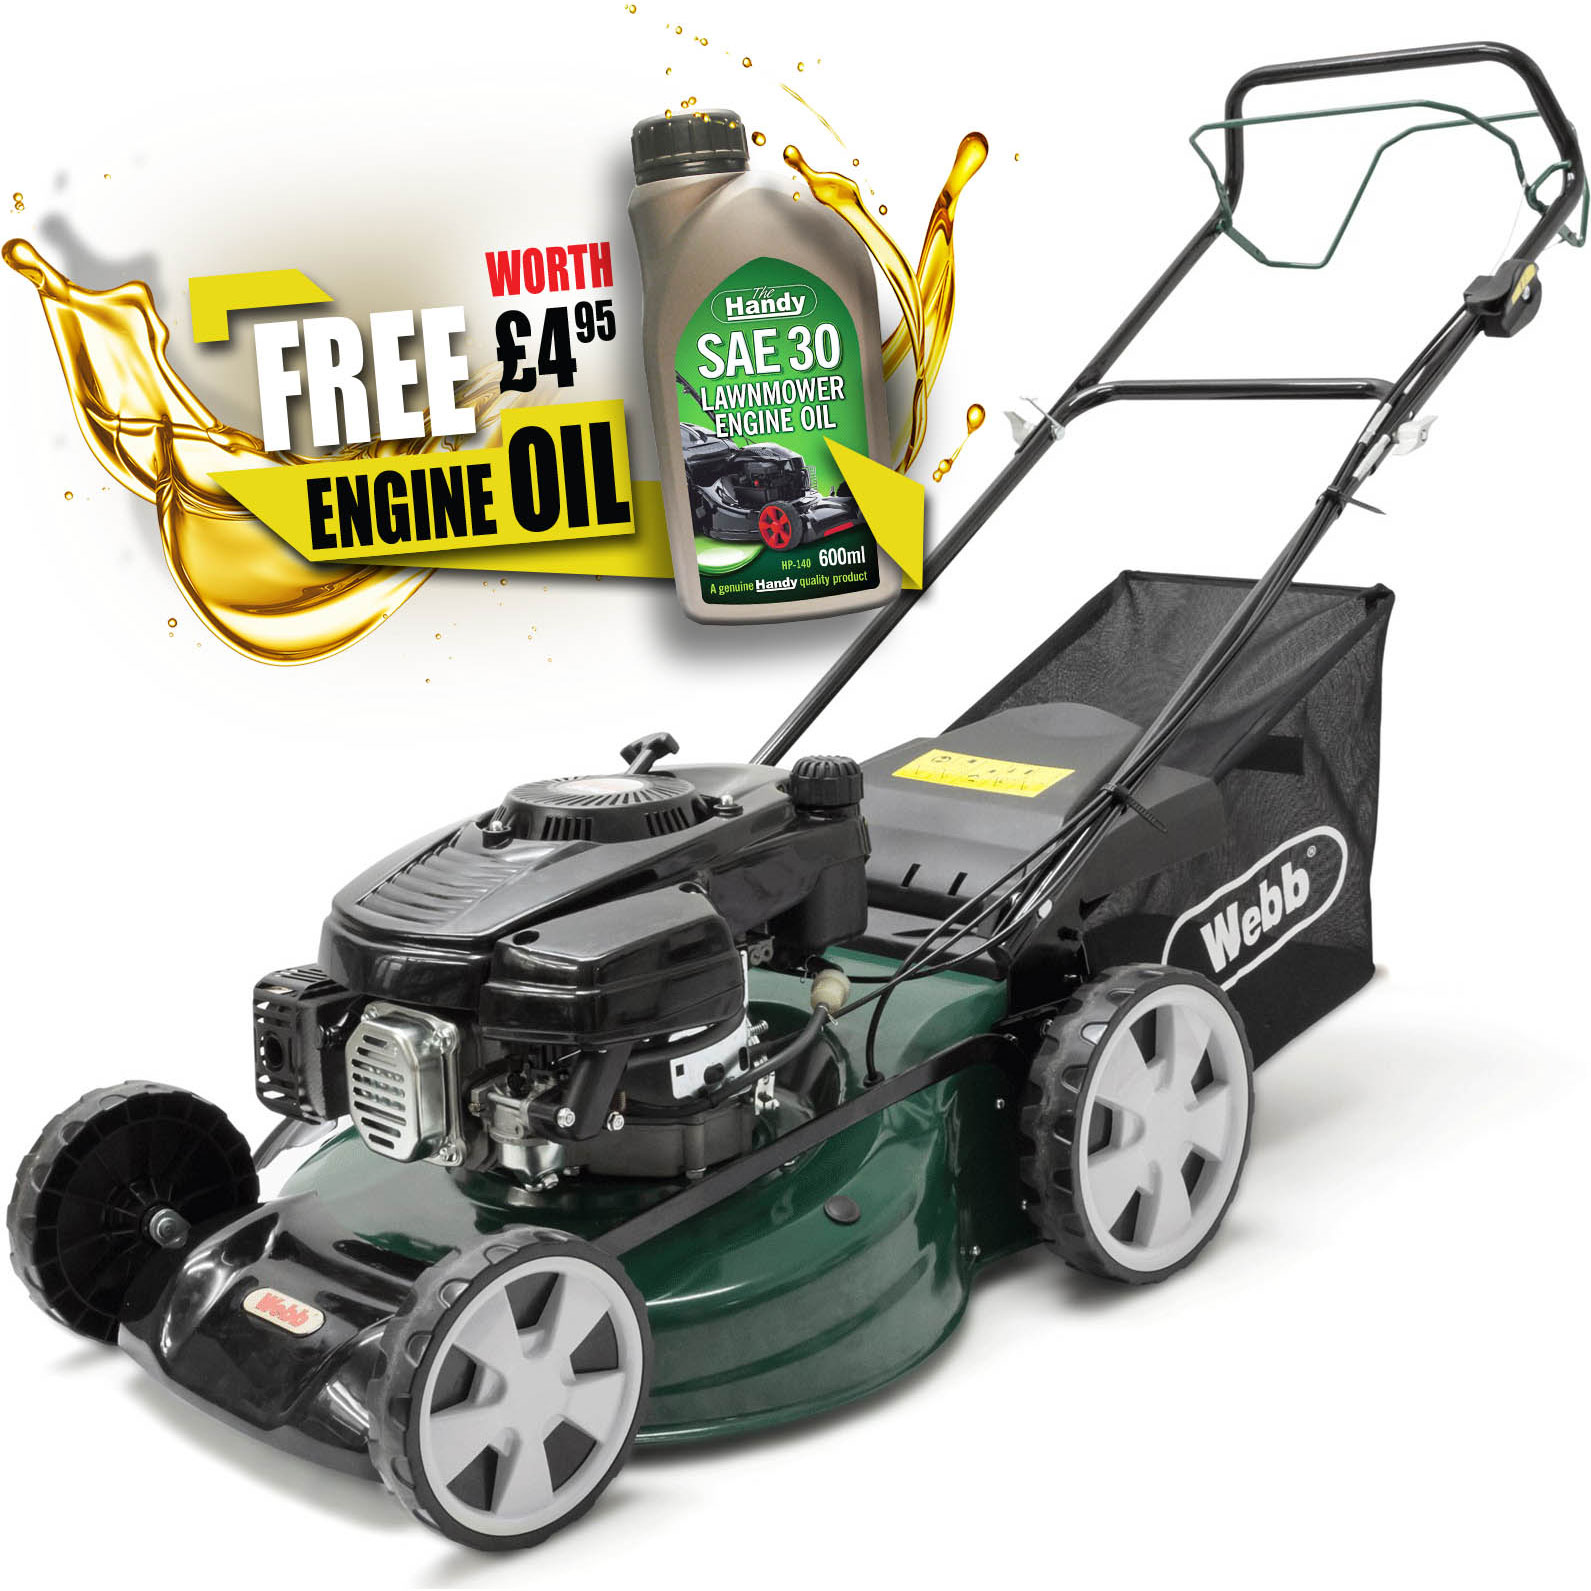 Image of Webb WER51SP Classic Self Propelled Petrol Rotary Lawnmower 510mm FREE Engine Oil Worth £4.95